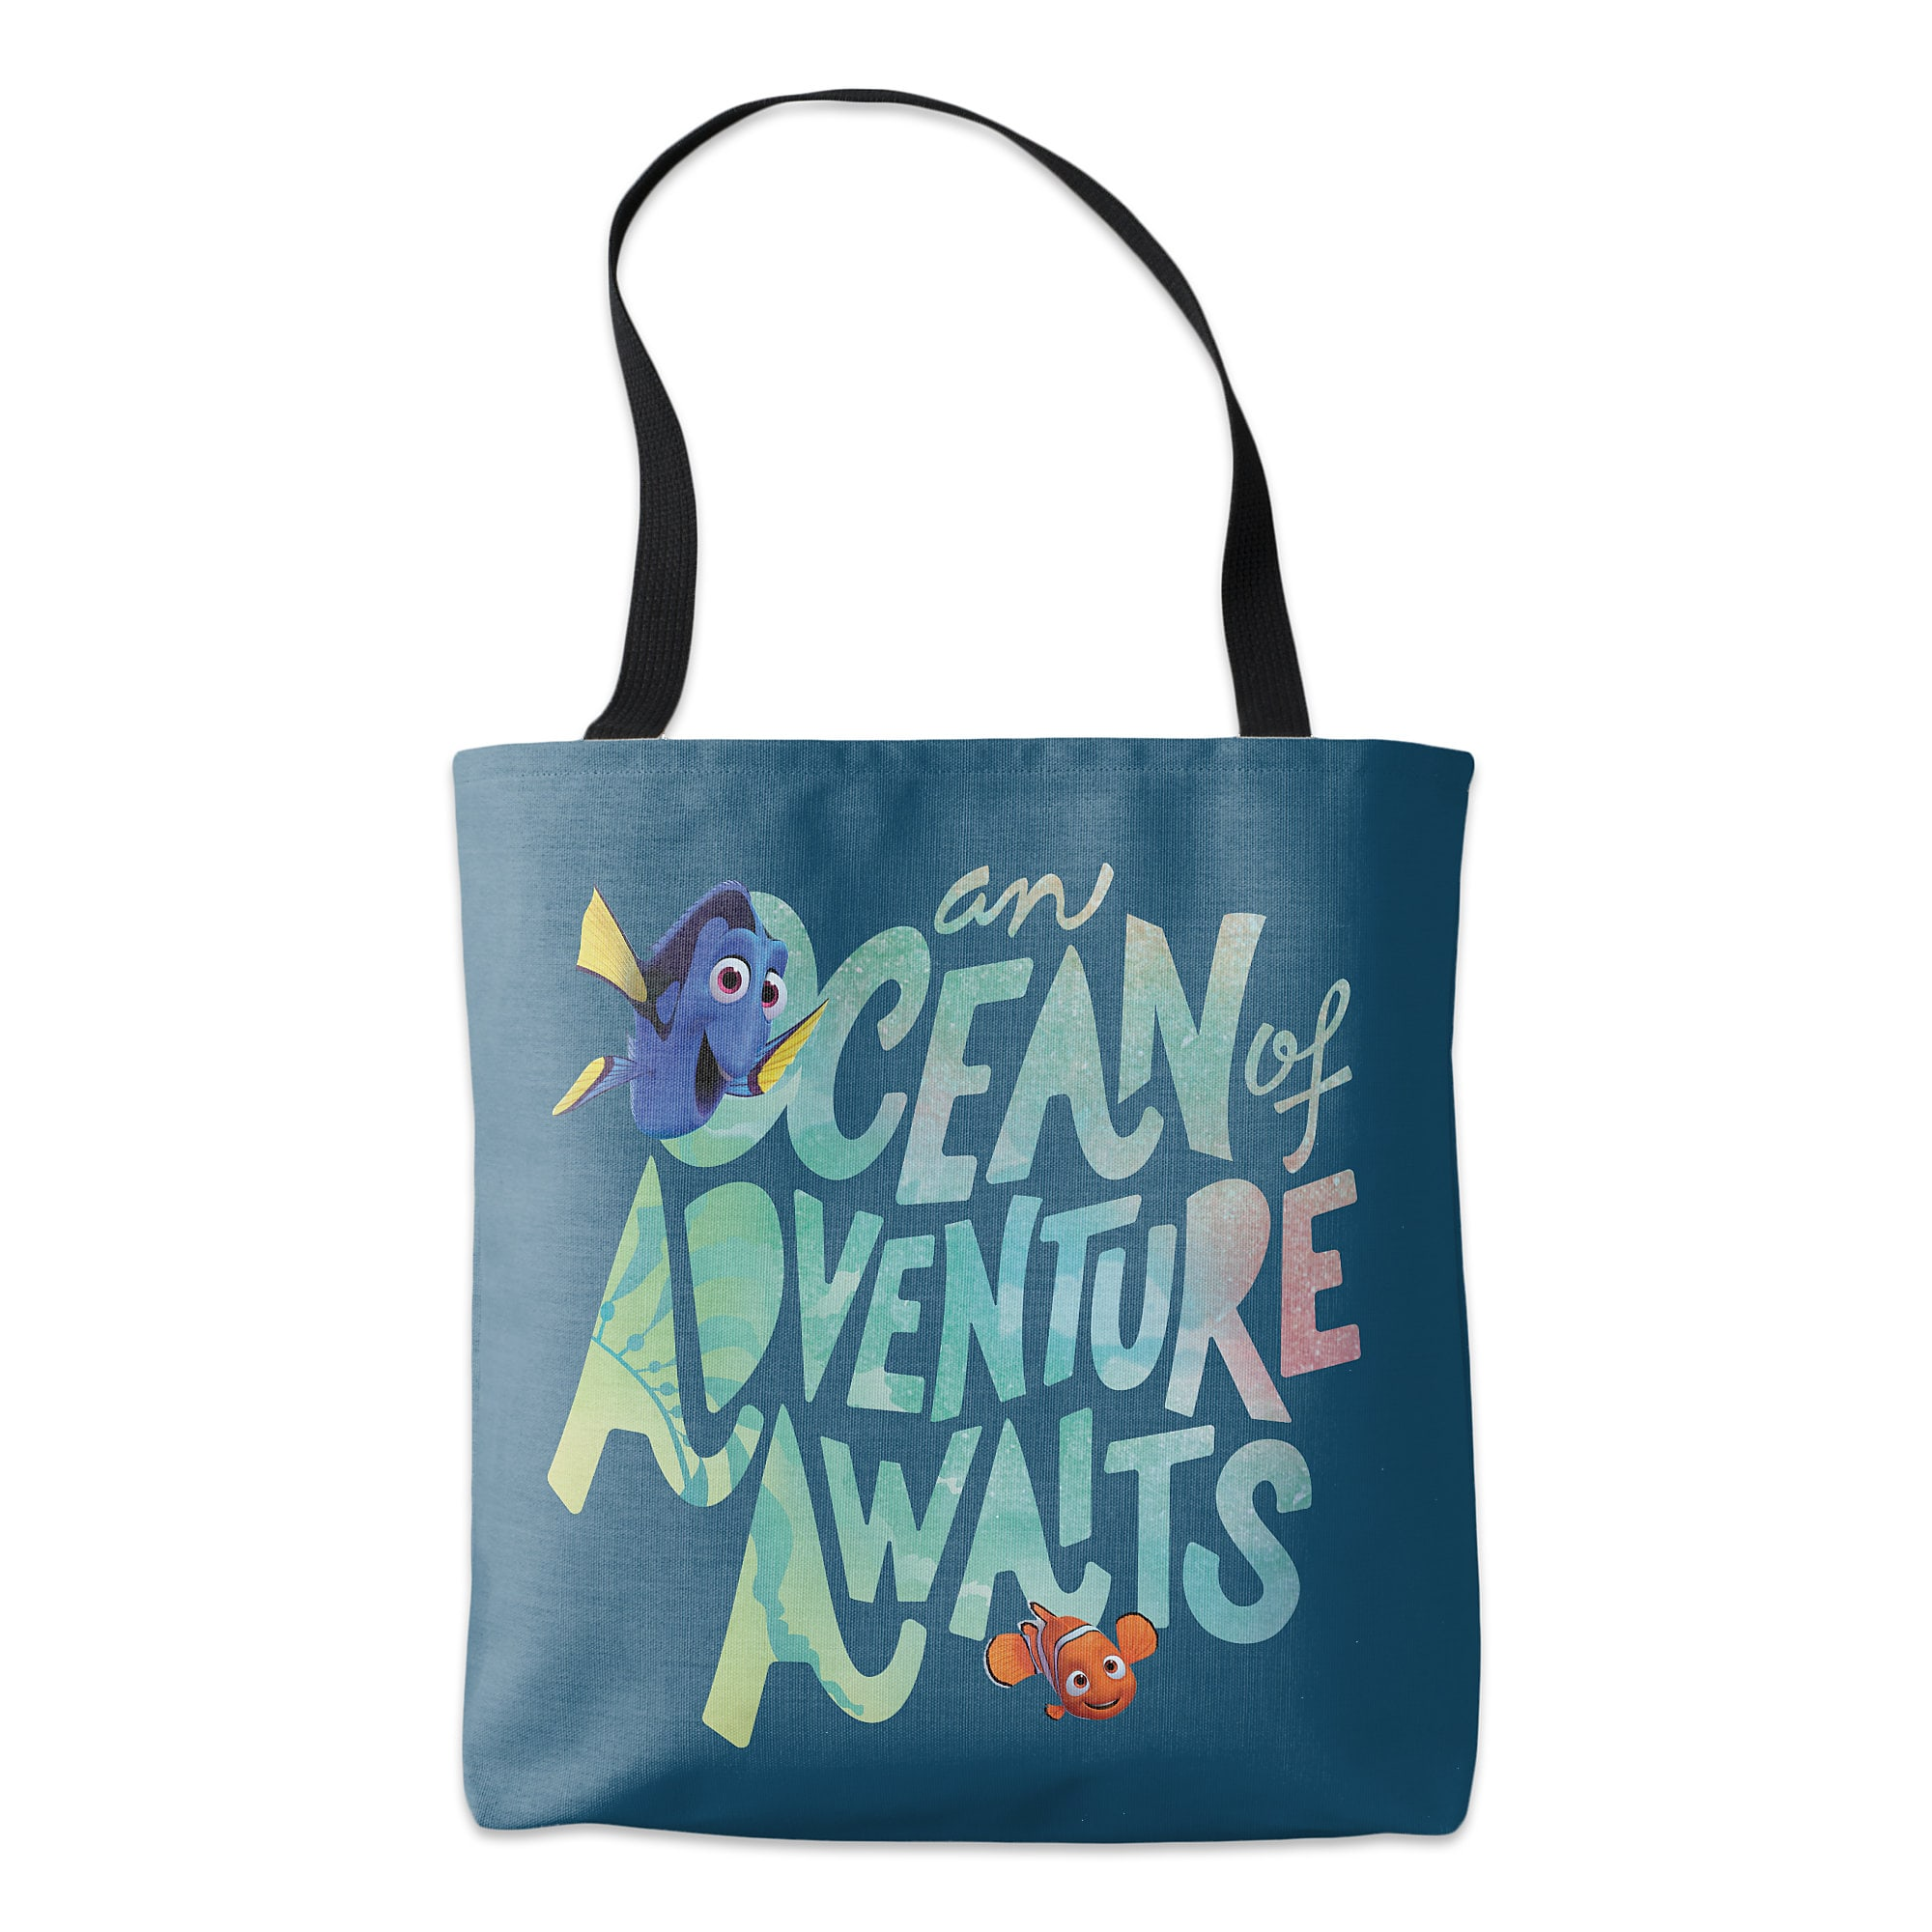 Dory & Nemo ''An Ocean of Adventure Awaits'' Tote - Customizable